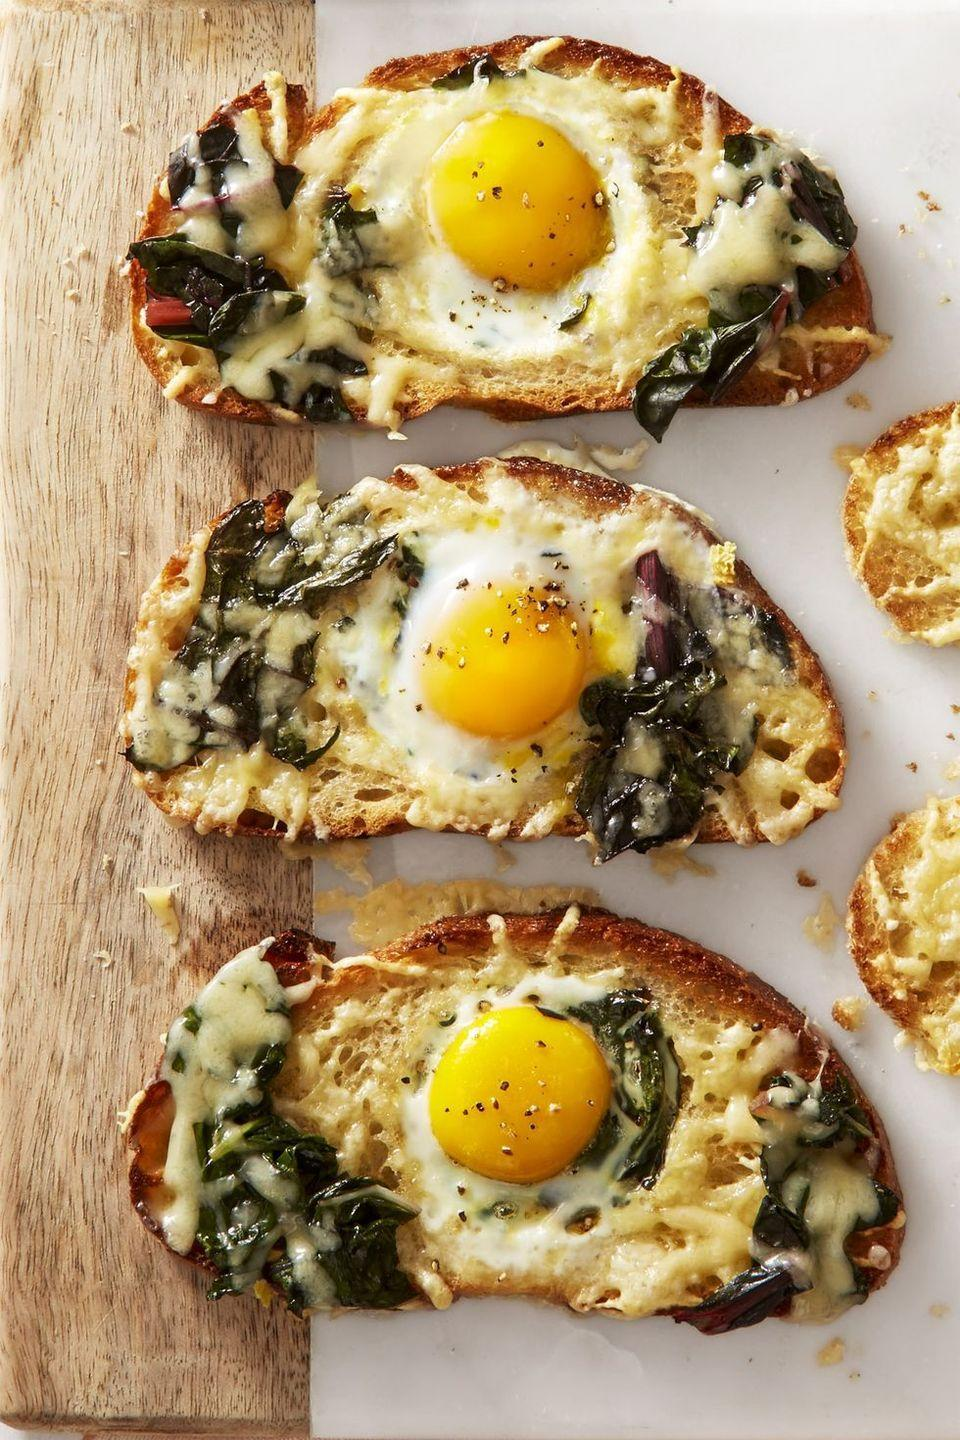 """<p>Make breakfast a little more fun by cracking the eggs in a hole in the bread. Dad is still a kid at heart, after all.</p><p><em><a href=""""https://www.goodhousekeeping.com/food-recipes/a43666/chard-gruyere-eggs-in-the-hole-recipe/"""" rel=""""nofollow noopener"""" target=""""_blank"""" data-ylk=""""slk:Get the recipe for Chard and Gruyère Eggs in the Hole »"""" class=""""link rapid-noclick-resp"""">Get the recipe for Chard and Gruyère Eggs in the Hole »</a></em></p>"""